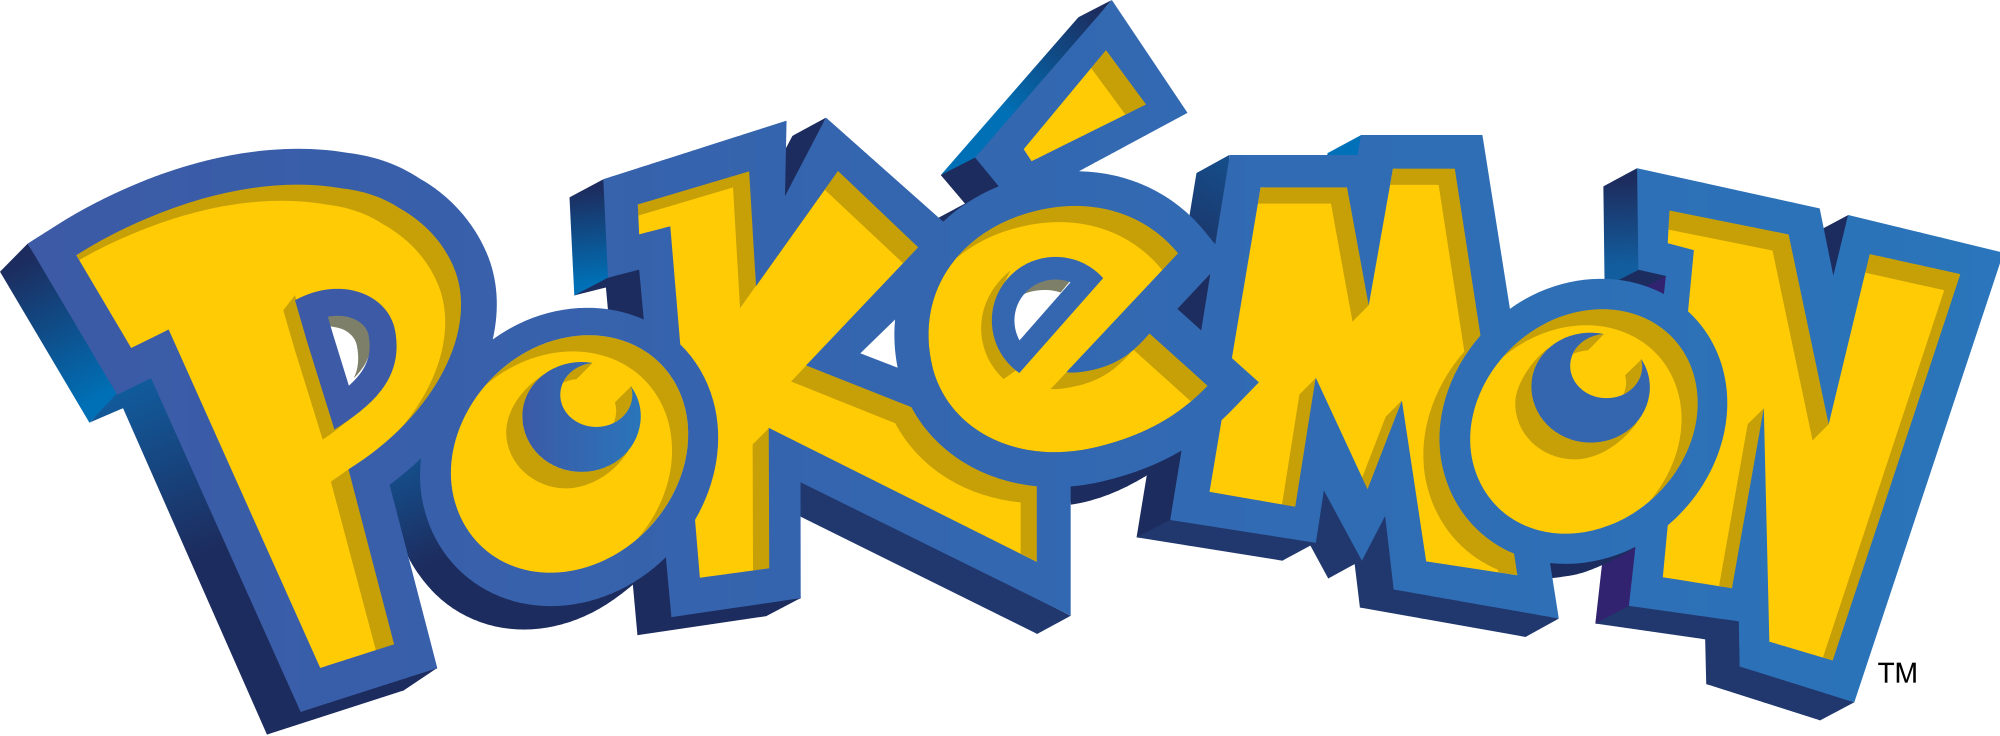 Image of Pokemon G